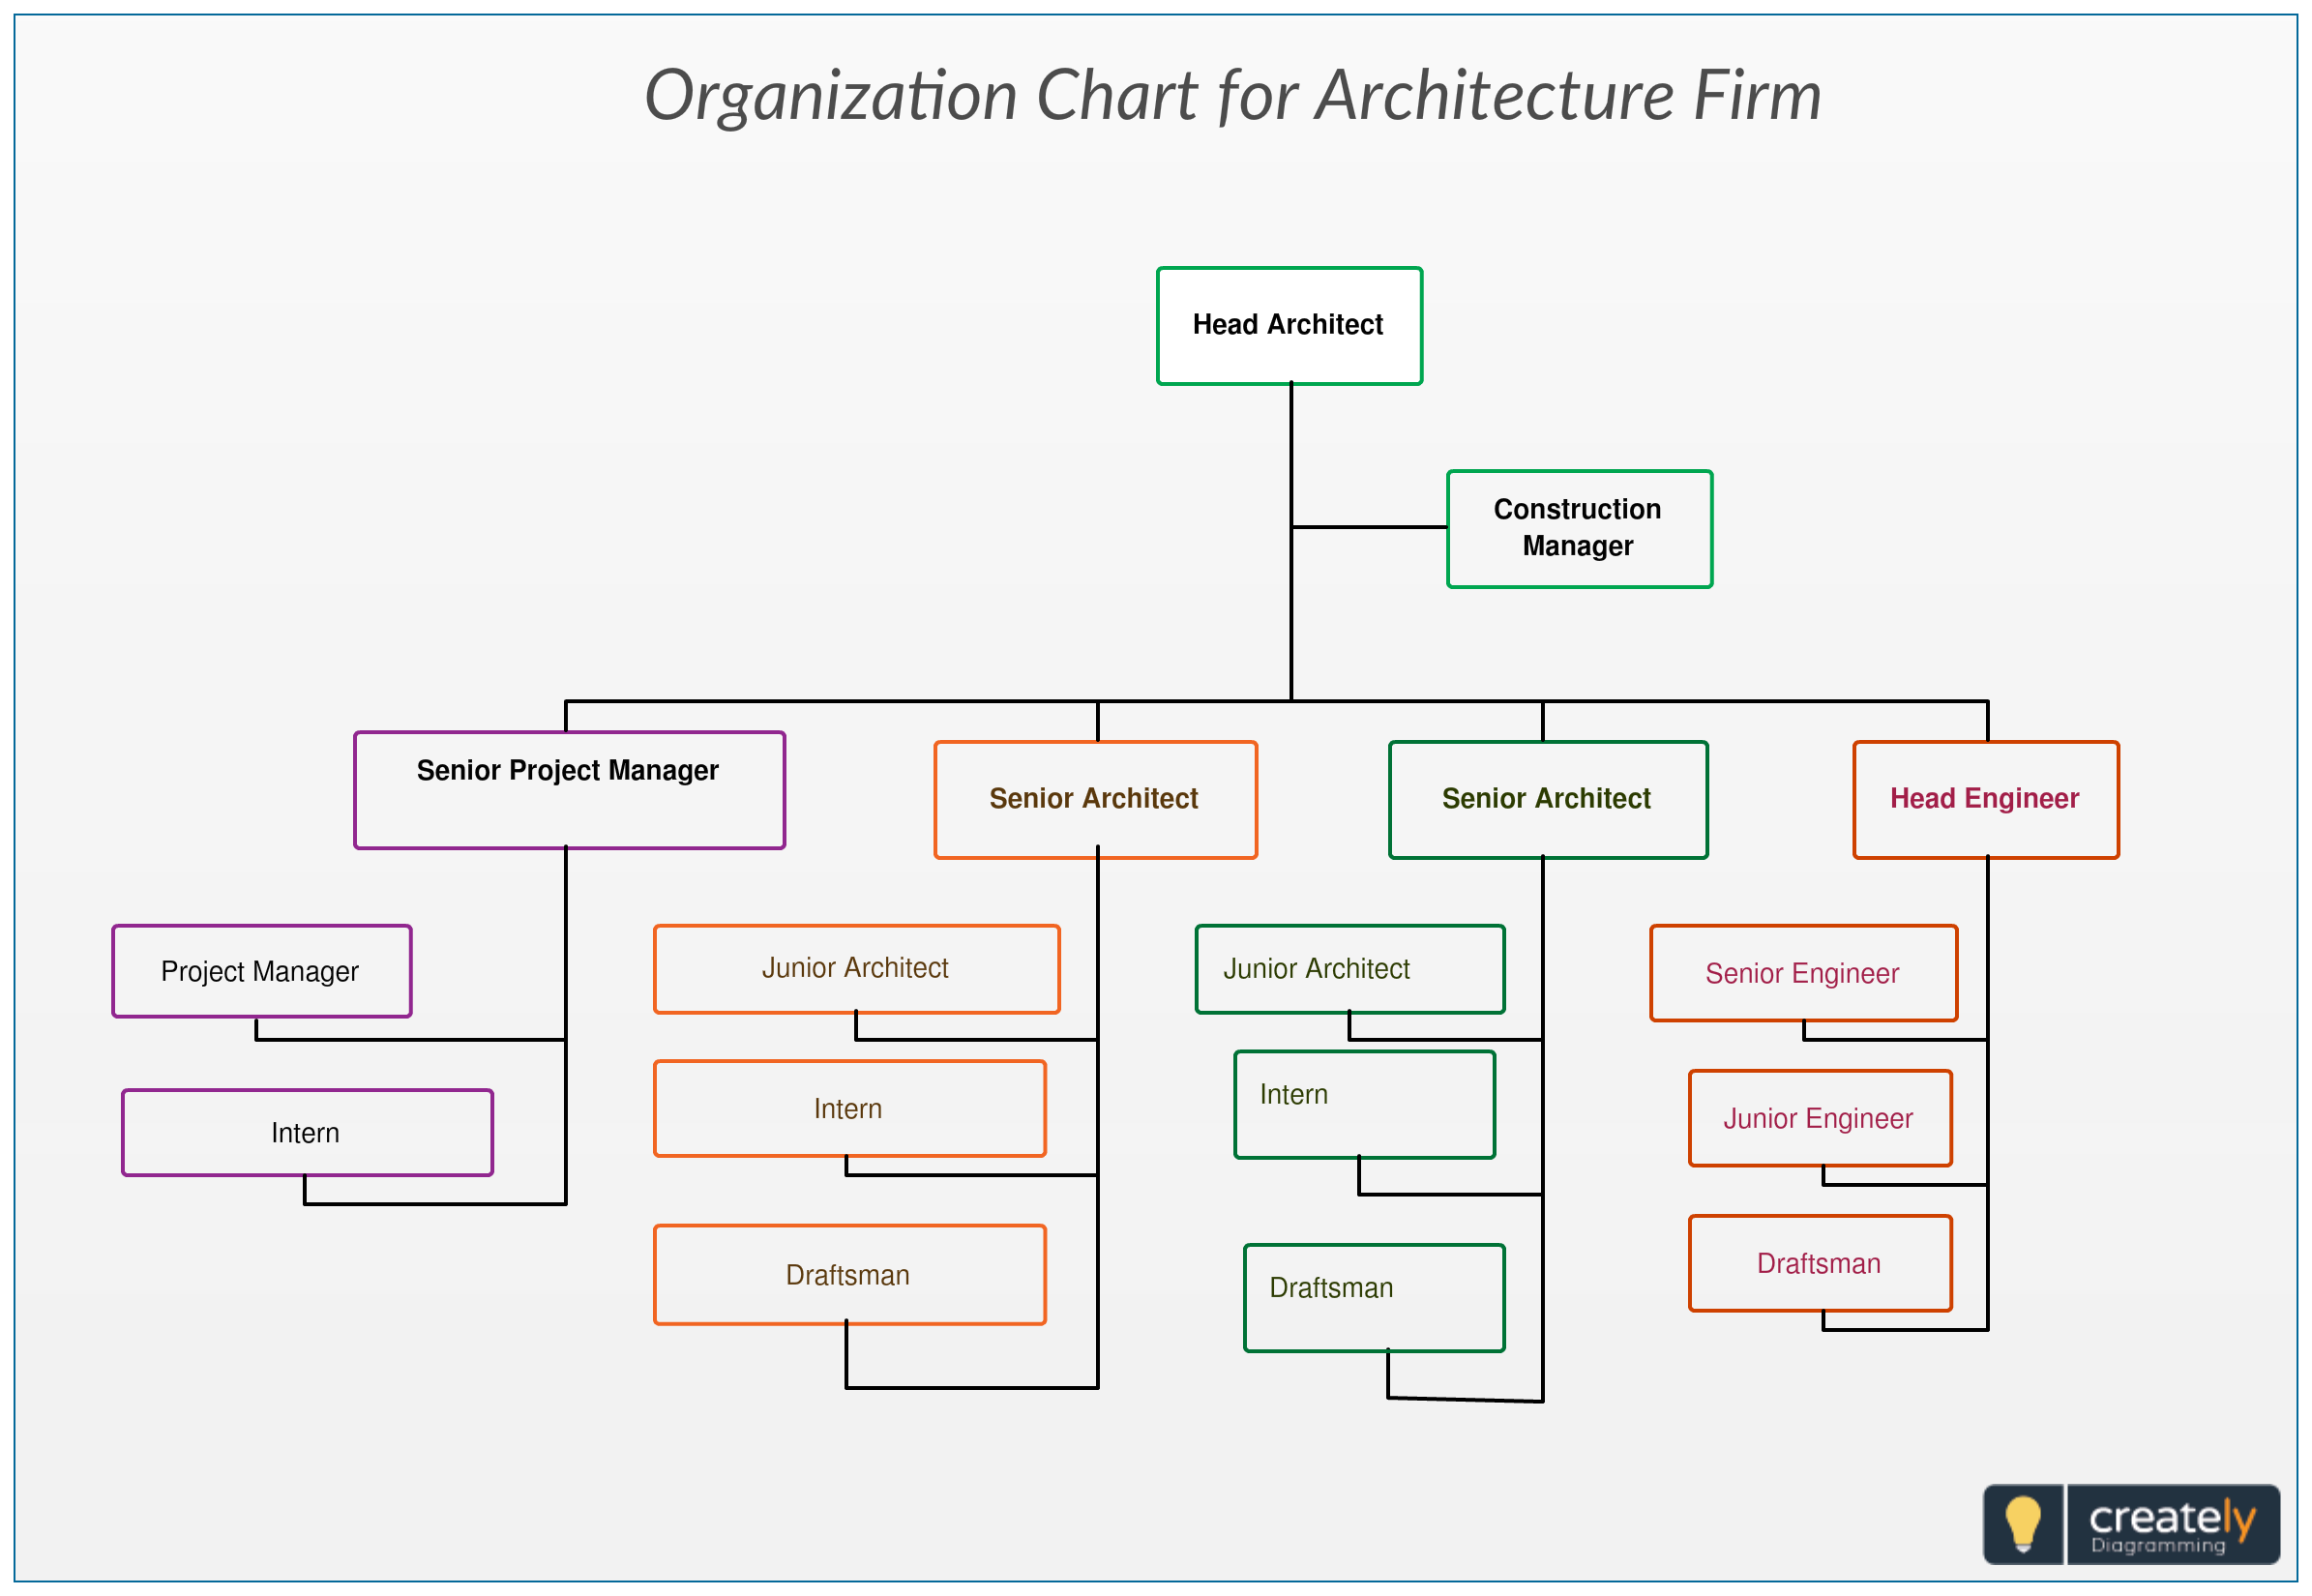 Organization Chart for Architecture Firm. You can use this